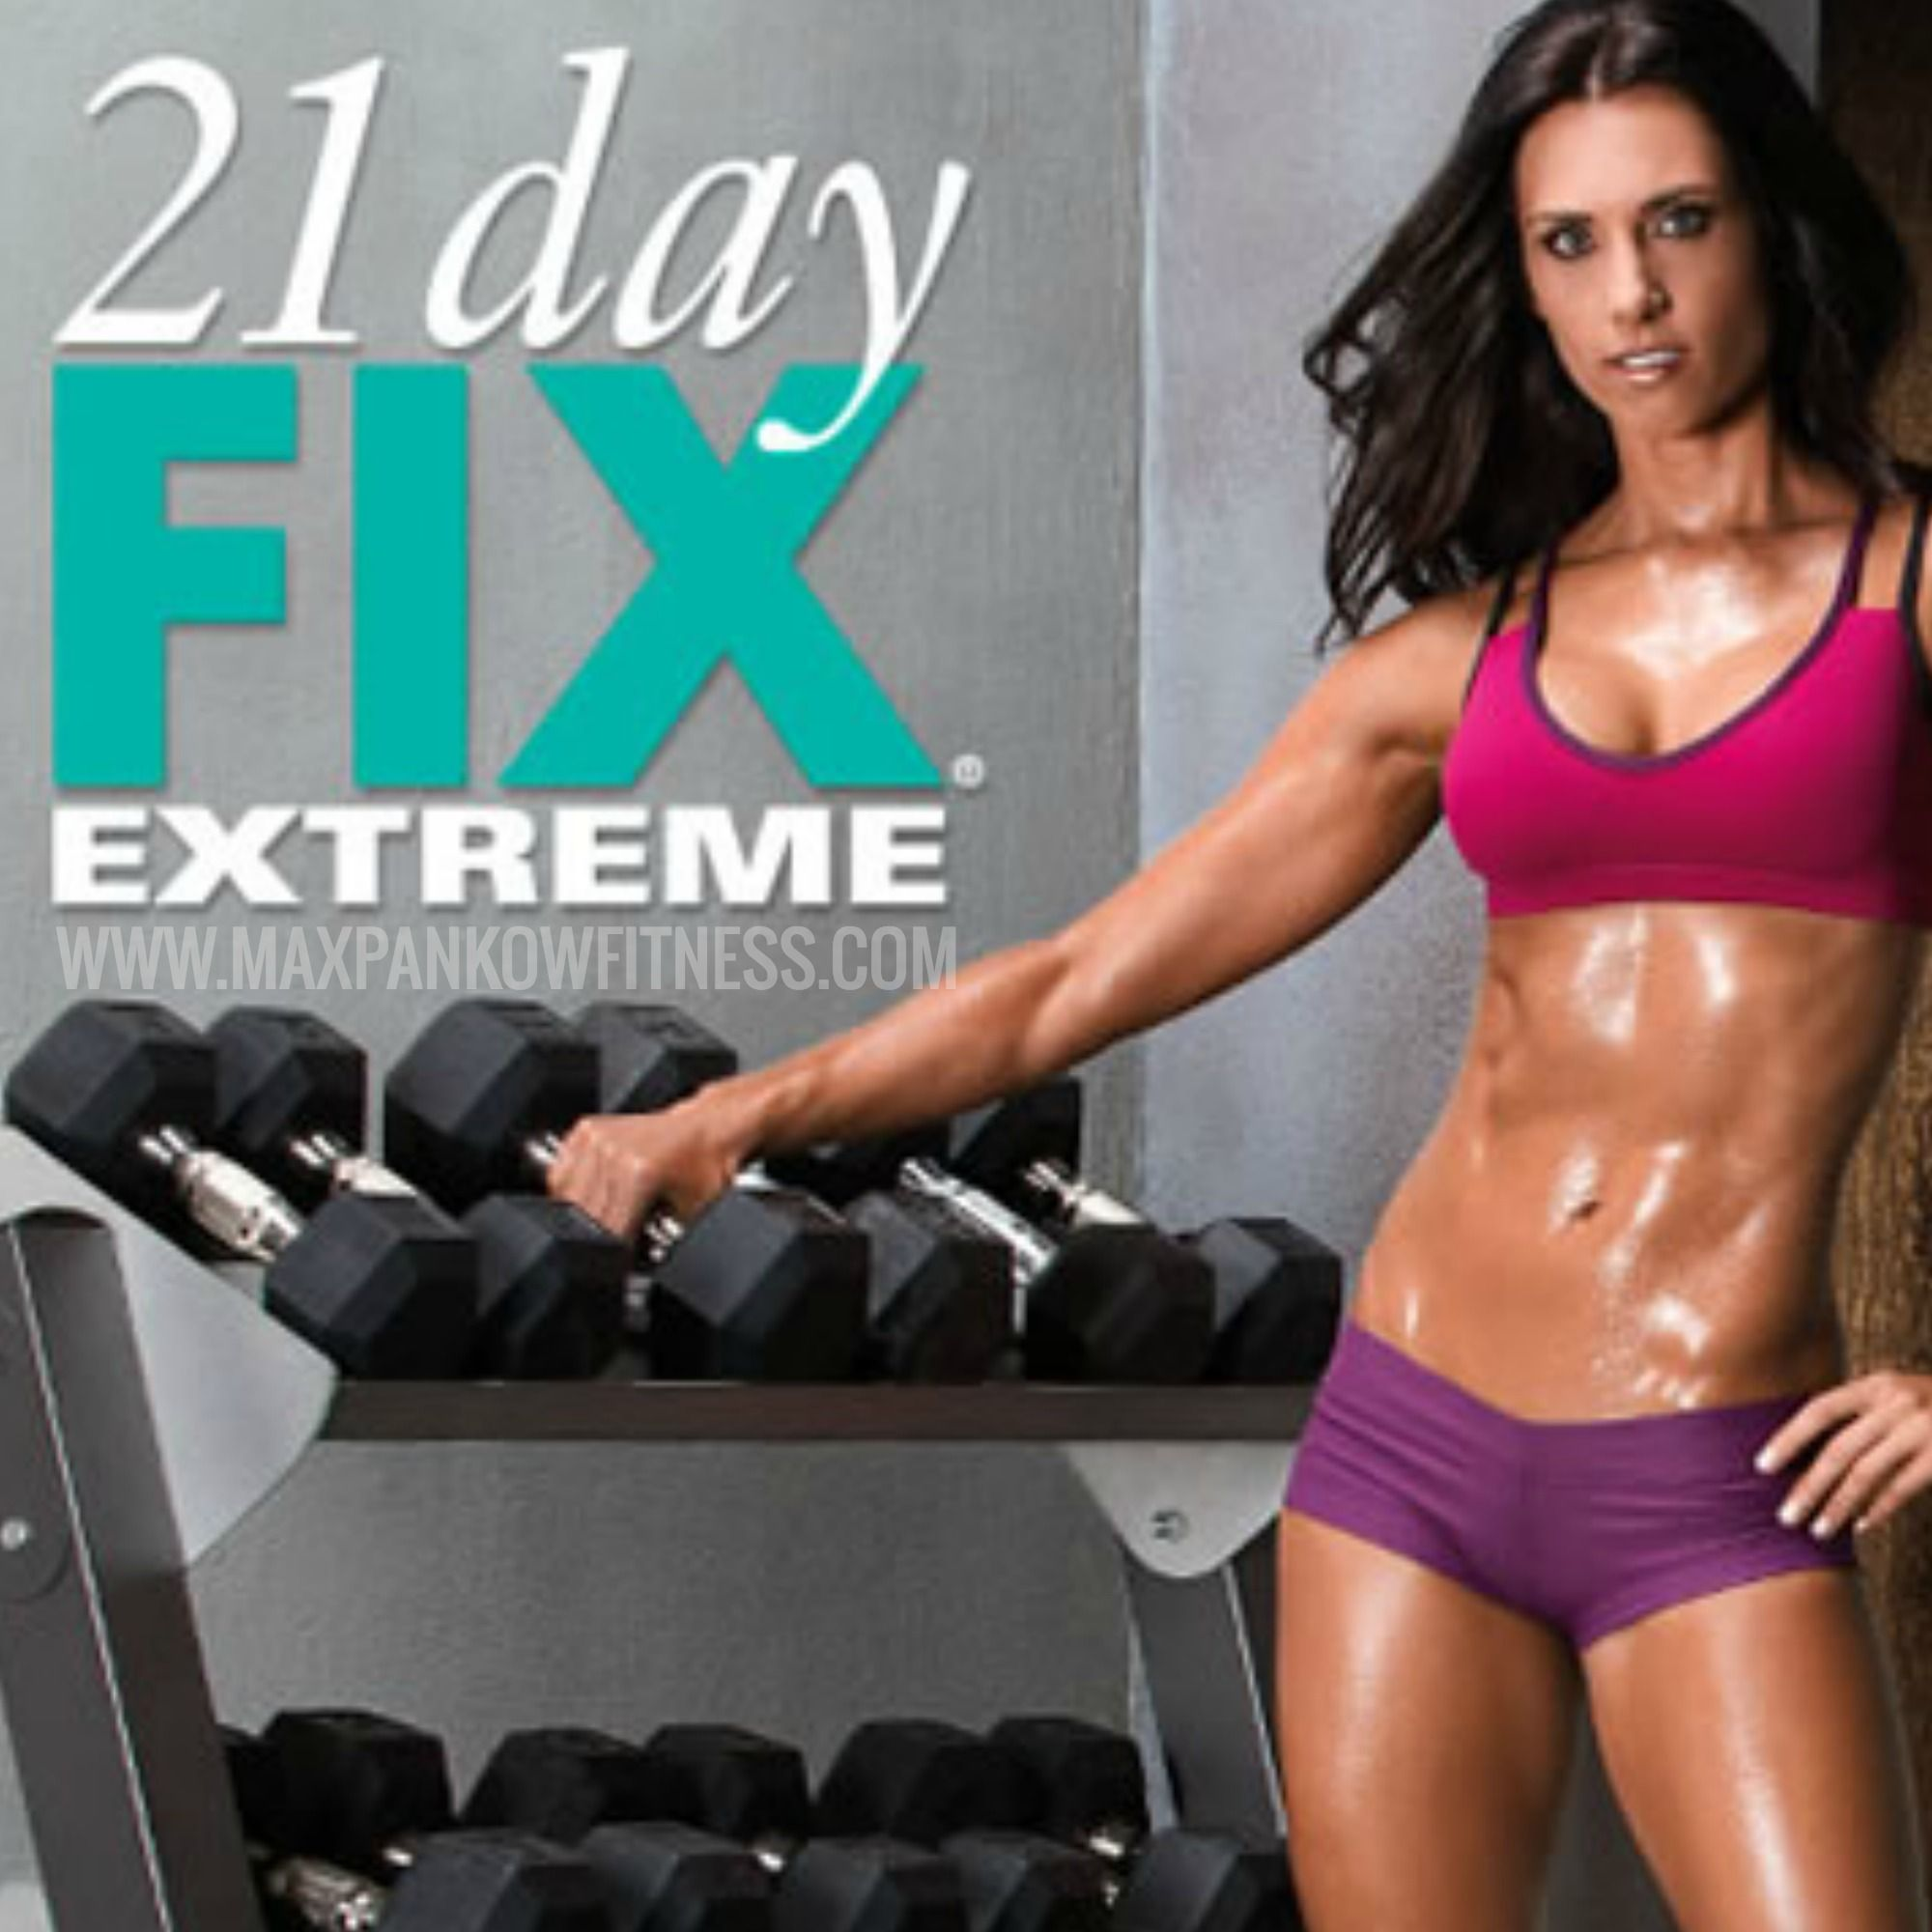 Clean Eating Max Pankow Fitness 21 Day Fix Extreme 21 Day Fix Fitness